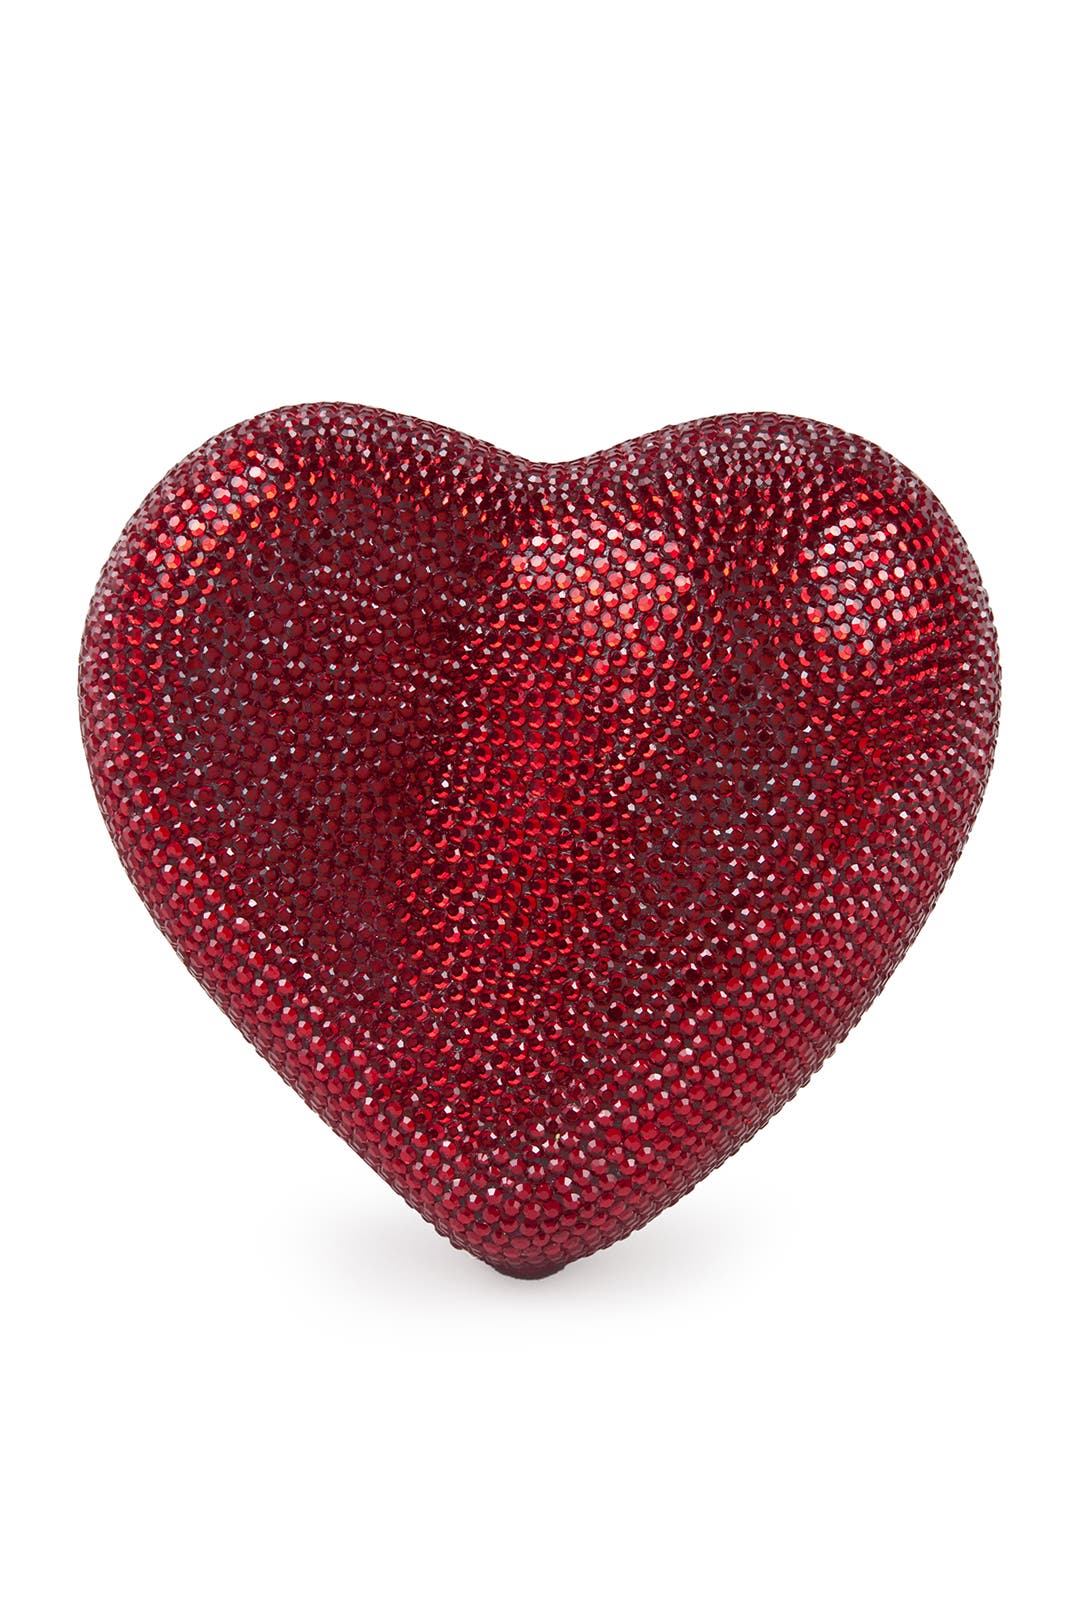 Lovestruck Bag by Judith Leiber